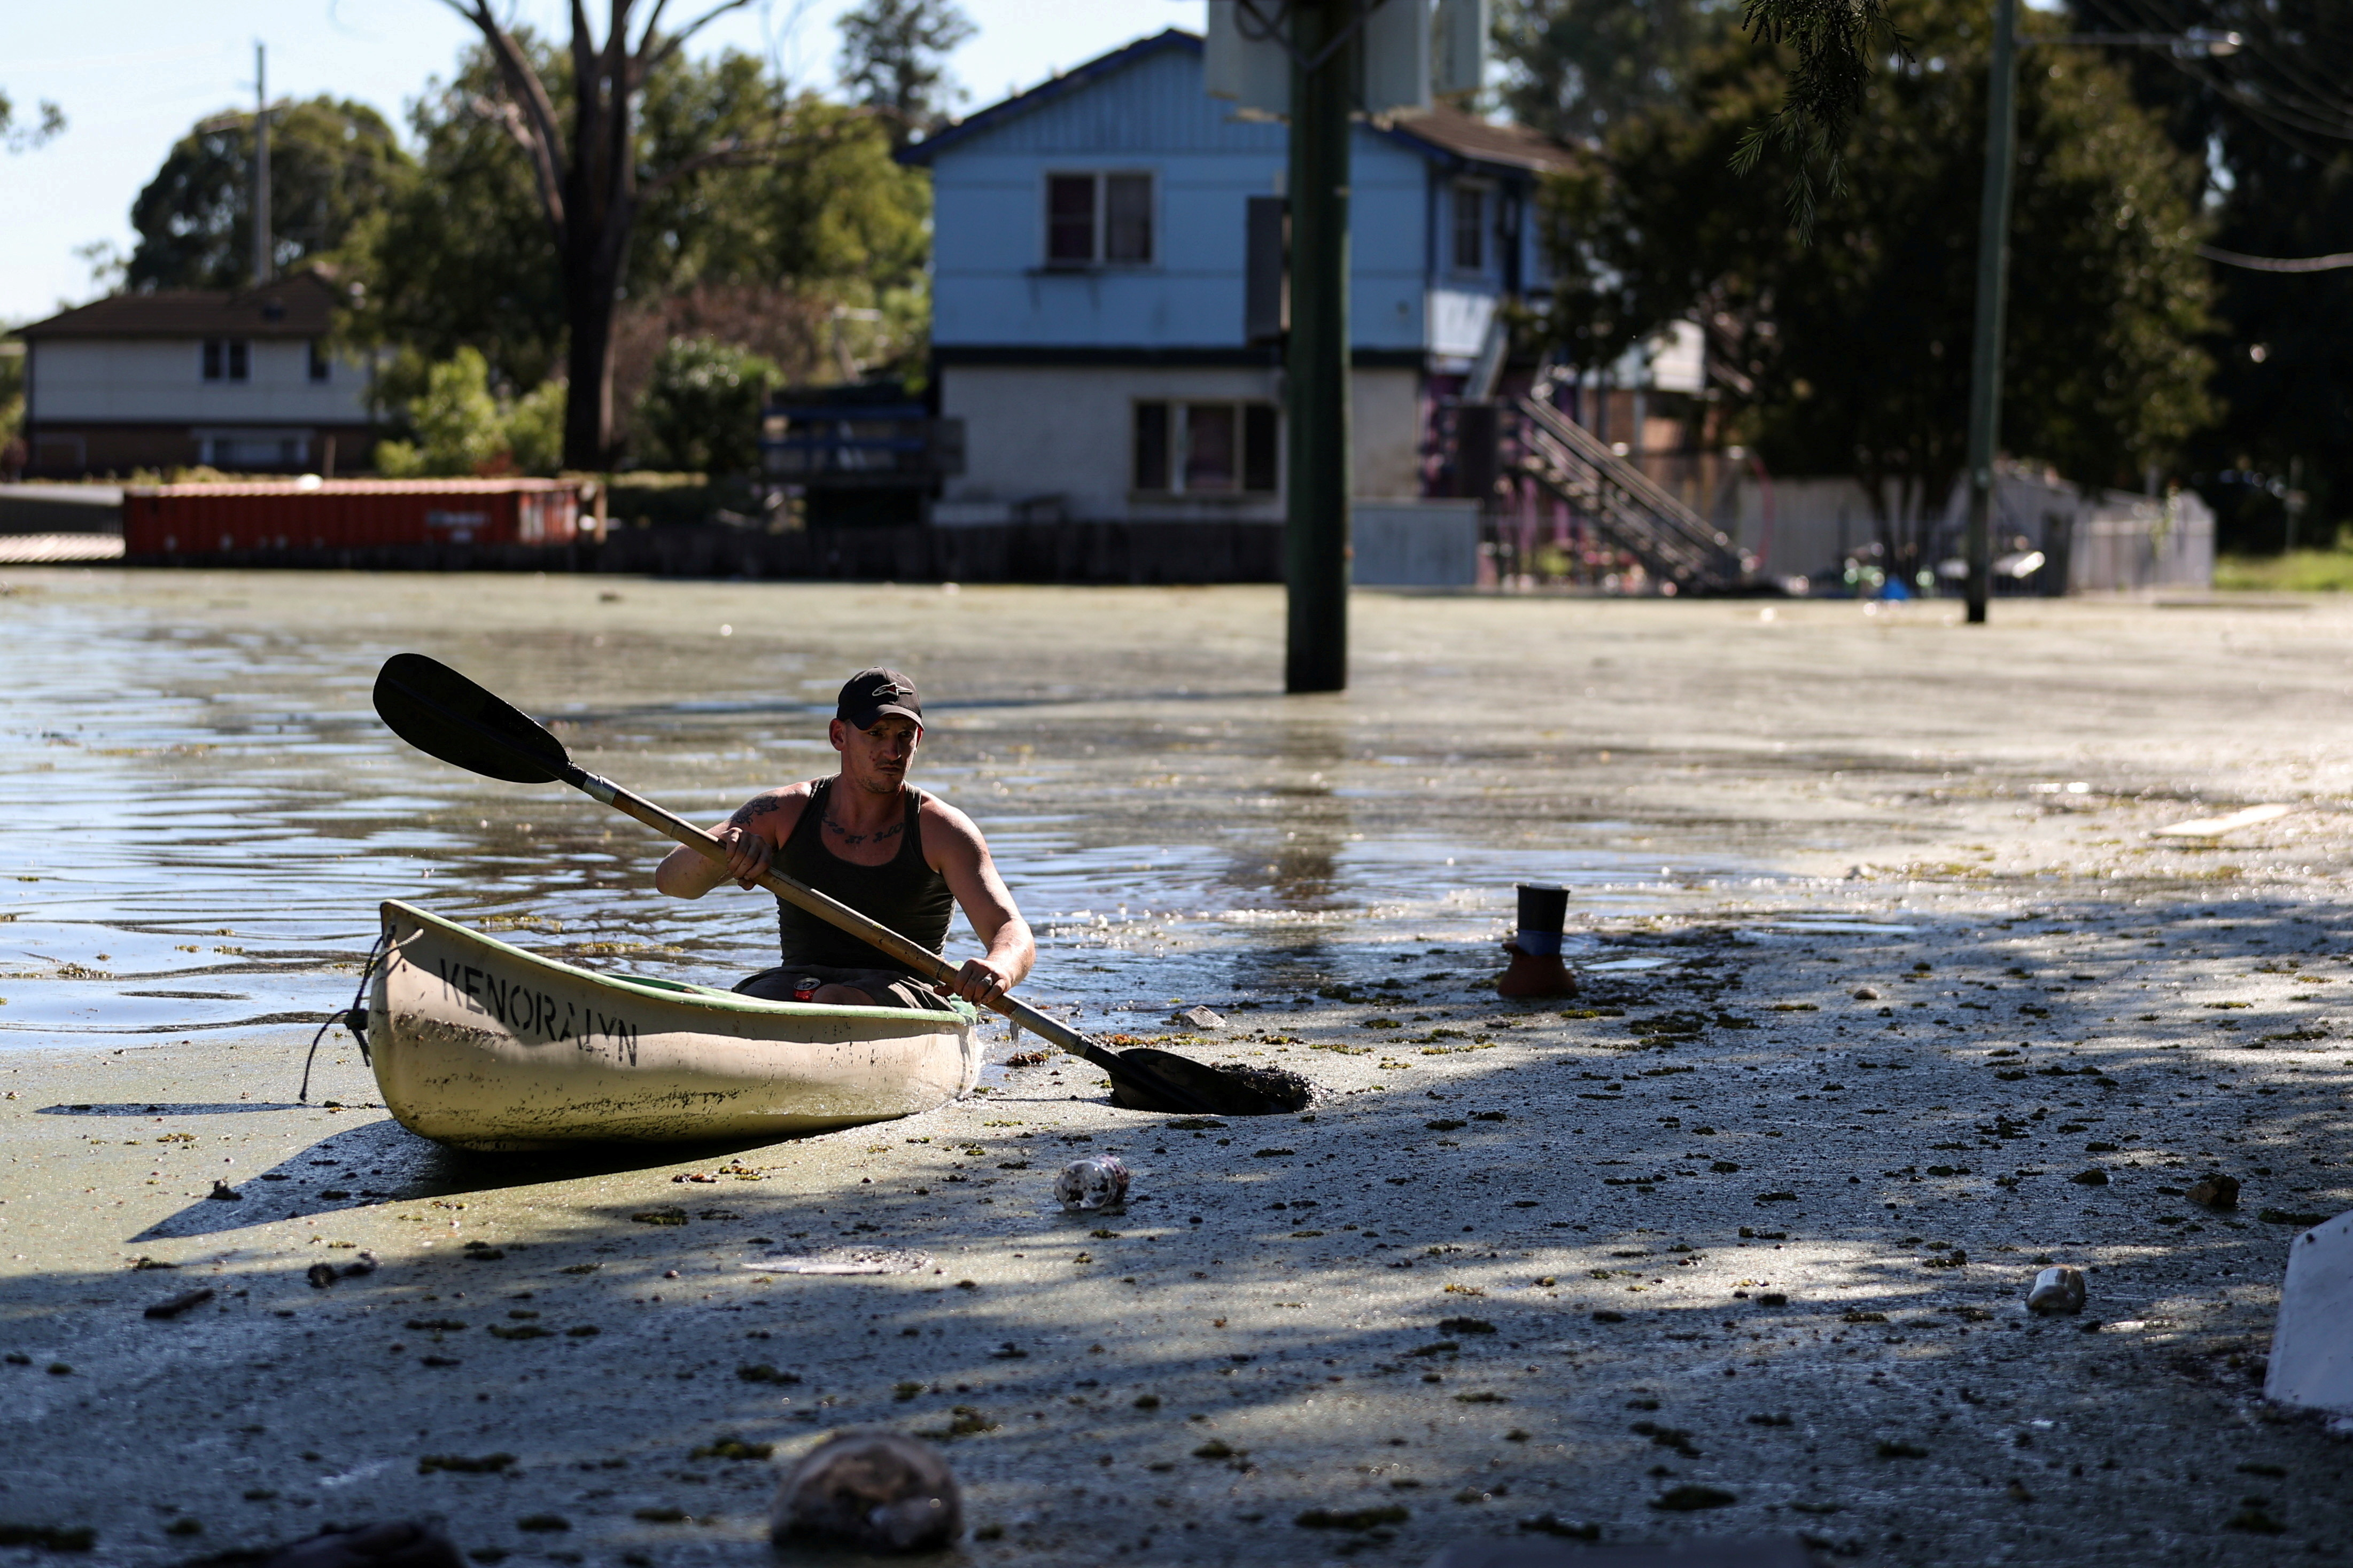 a local resident paddles a kayak over a flooded street as severe flooding affects the suburb of Windsor after days of heavy rain in the state of New South Wales, in Sydney, Australia, March 24, 2021